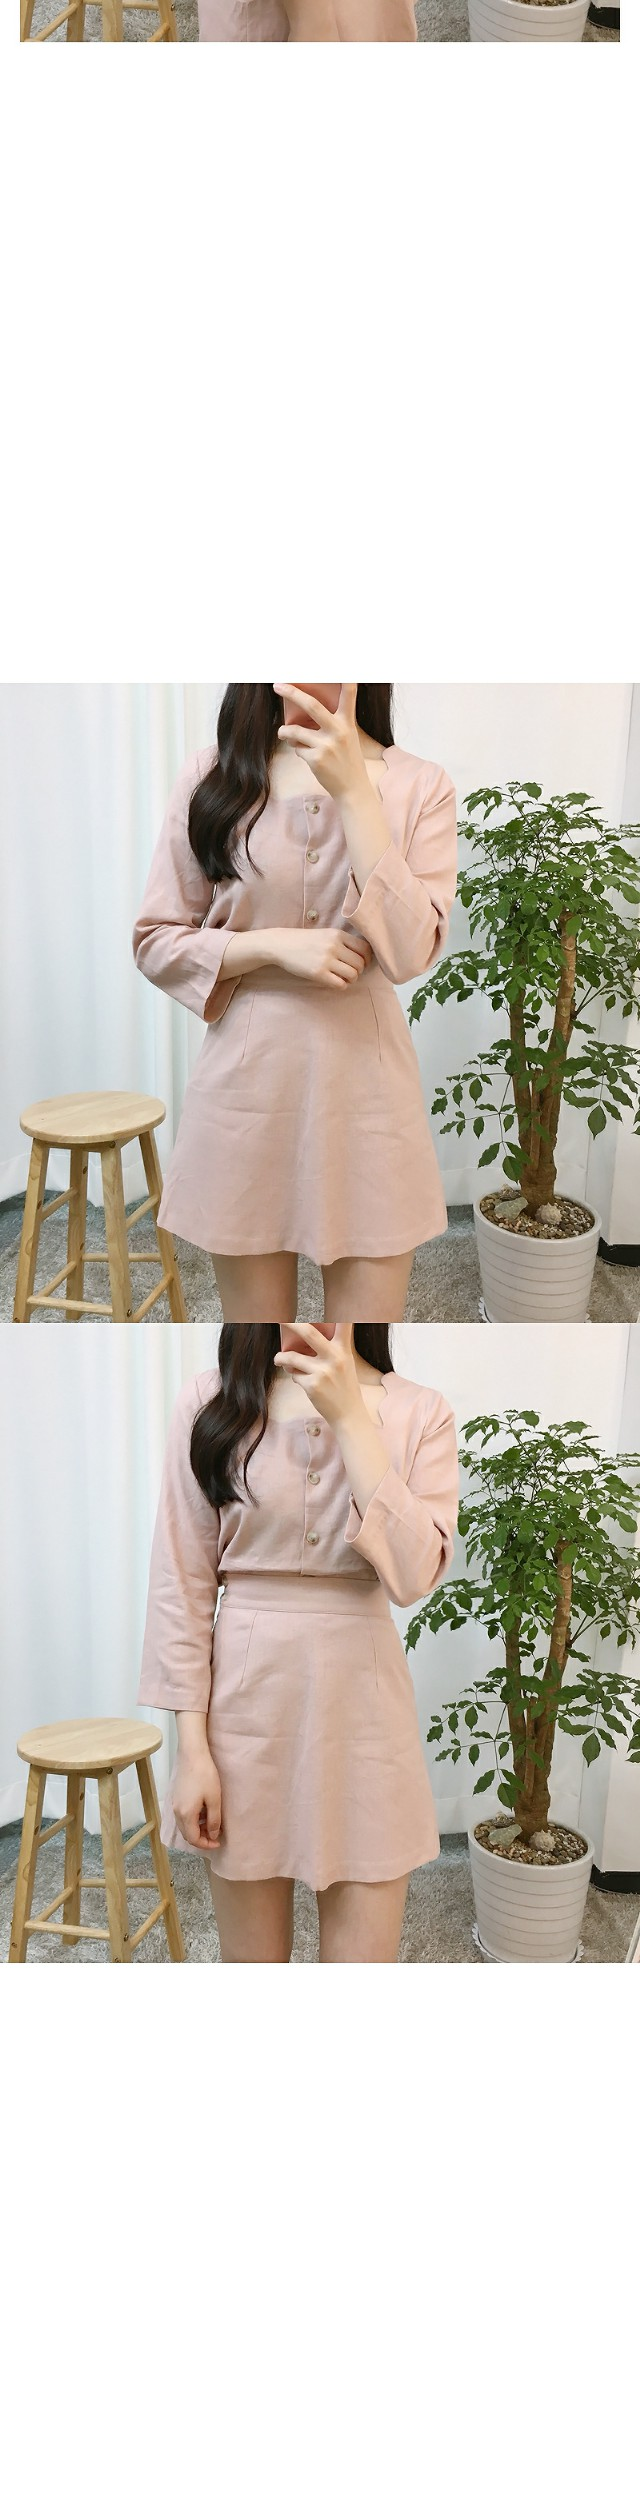 Wavy linen two piece ops